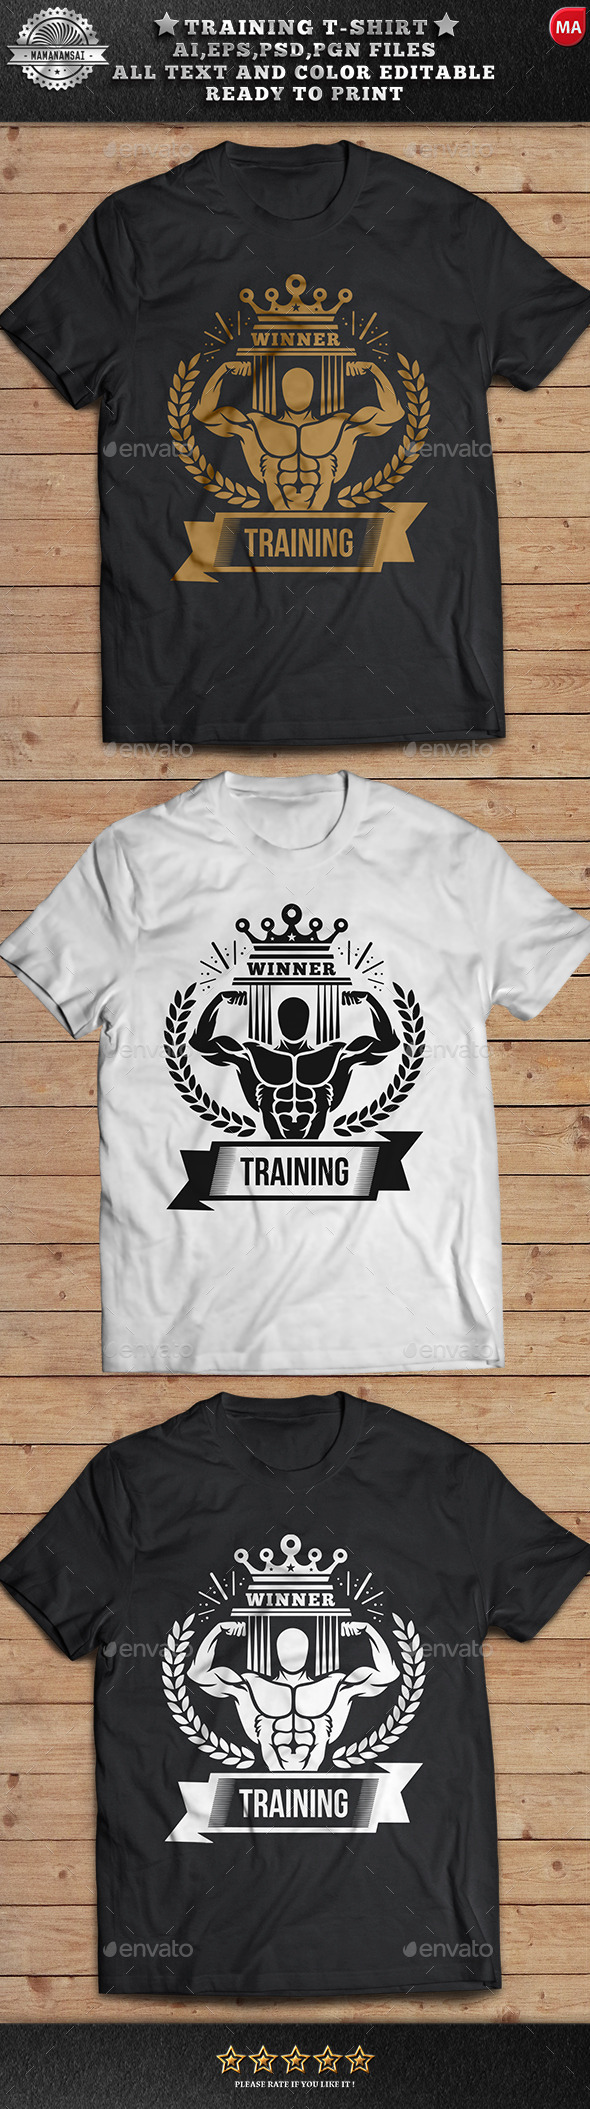 GraphicRiver Training T-Shirt Design 11416372